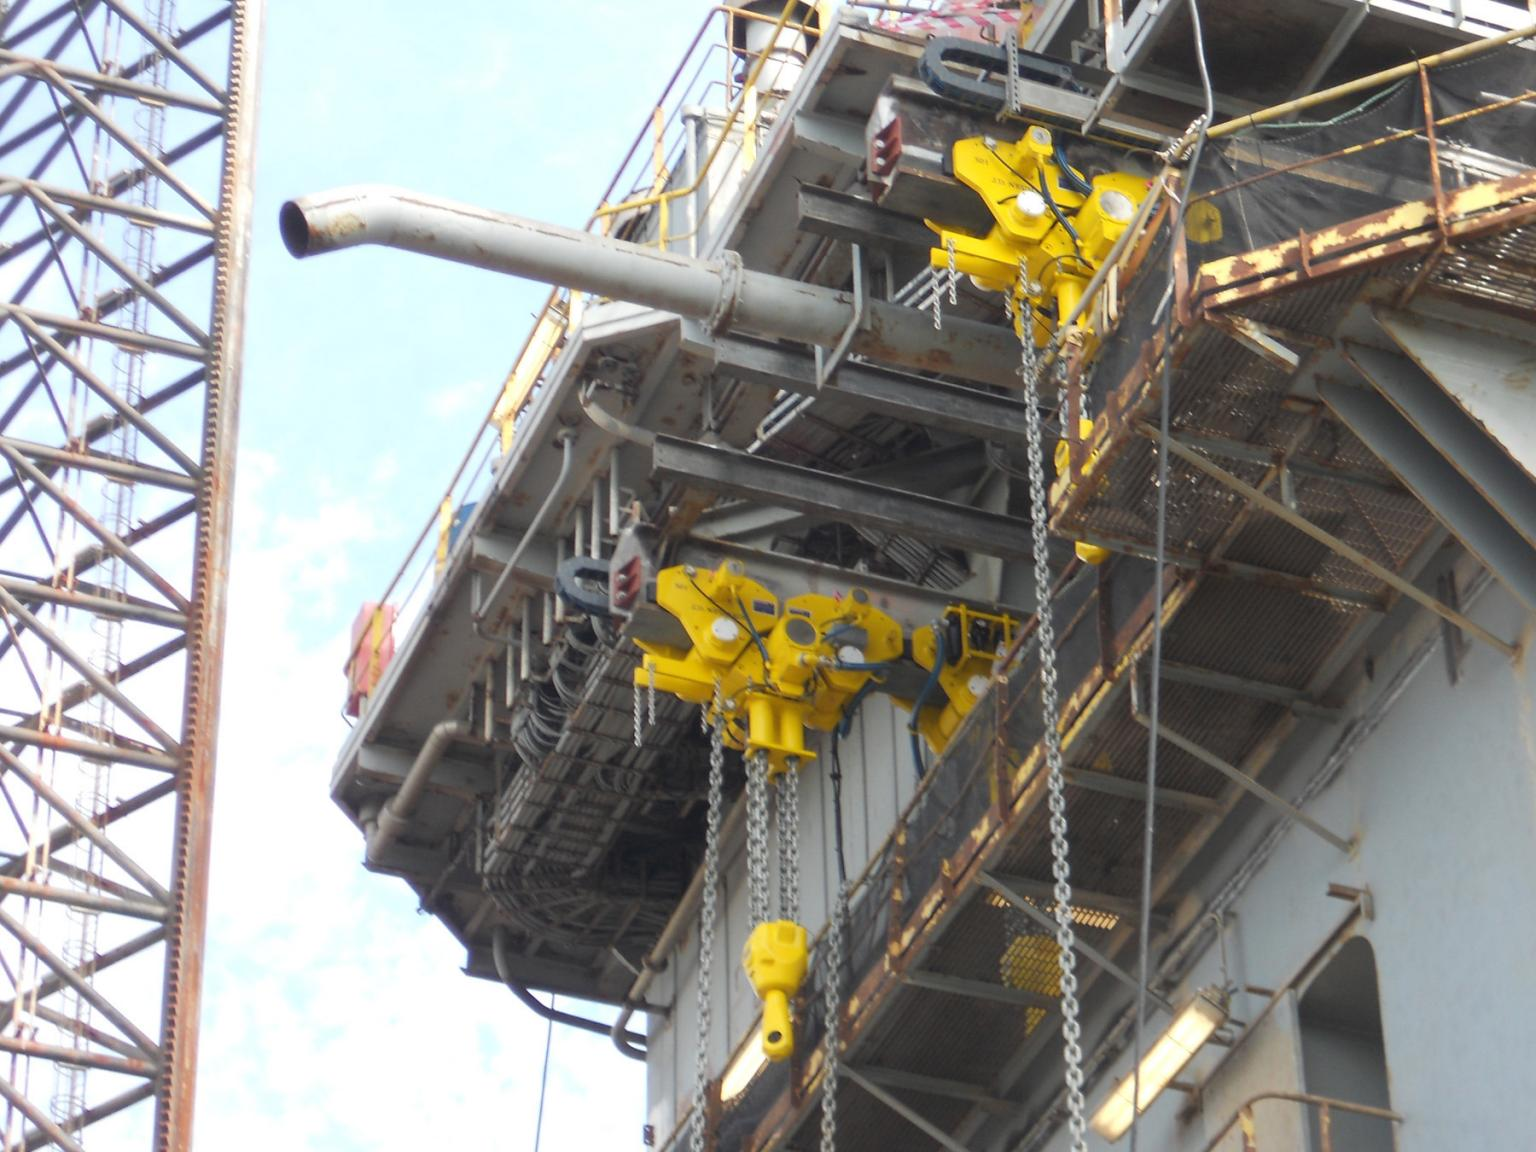 J D Neuhaus BOP handling air operated hoists being mounted on the Maersk offshore rig Guardian